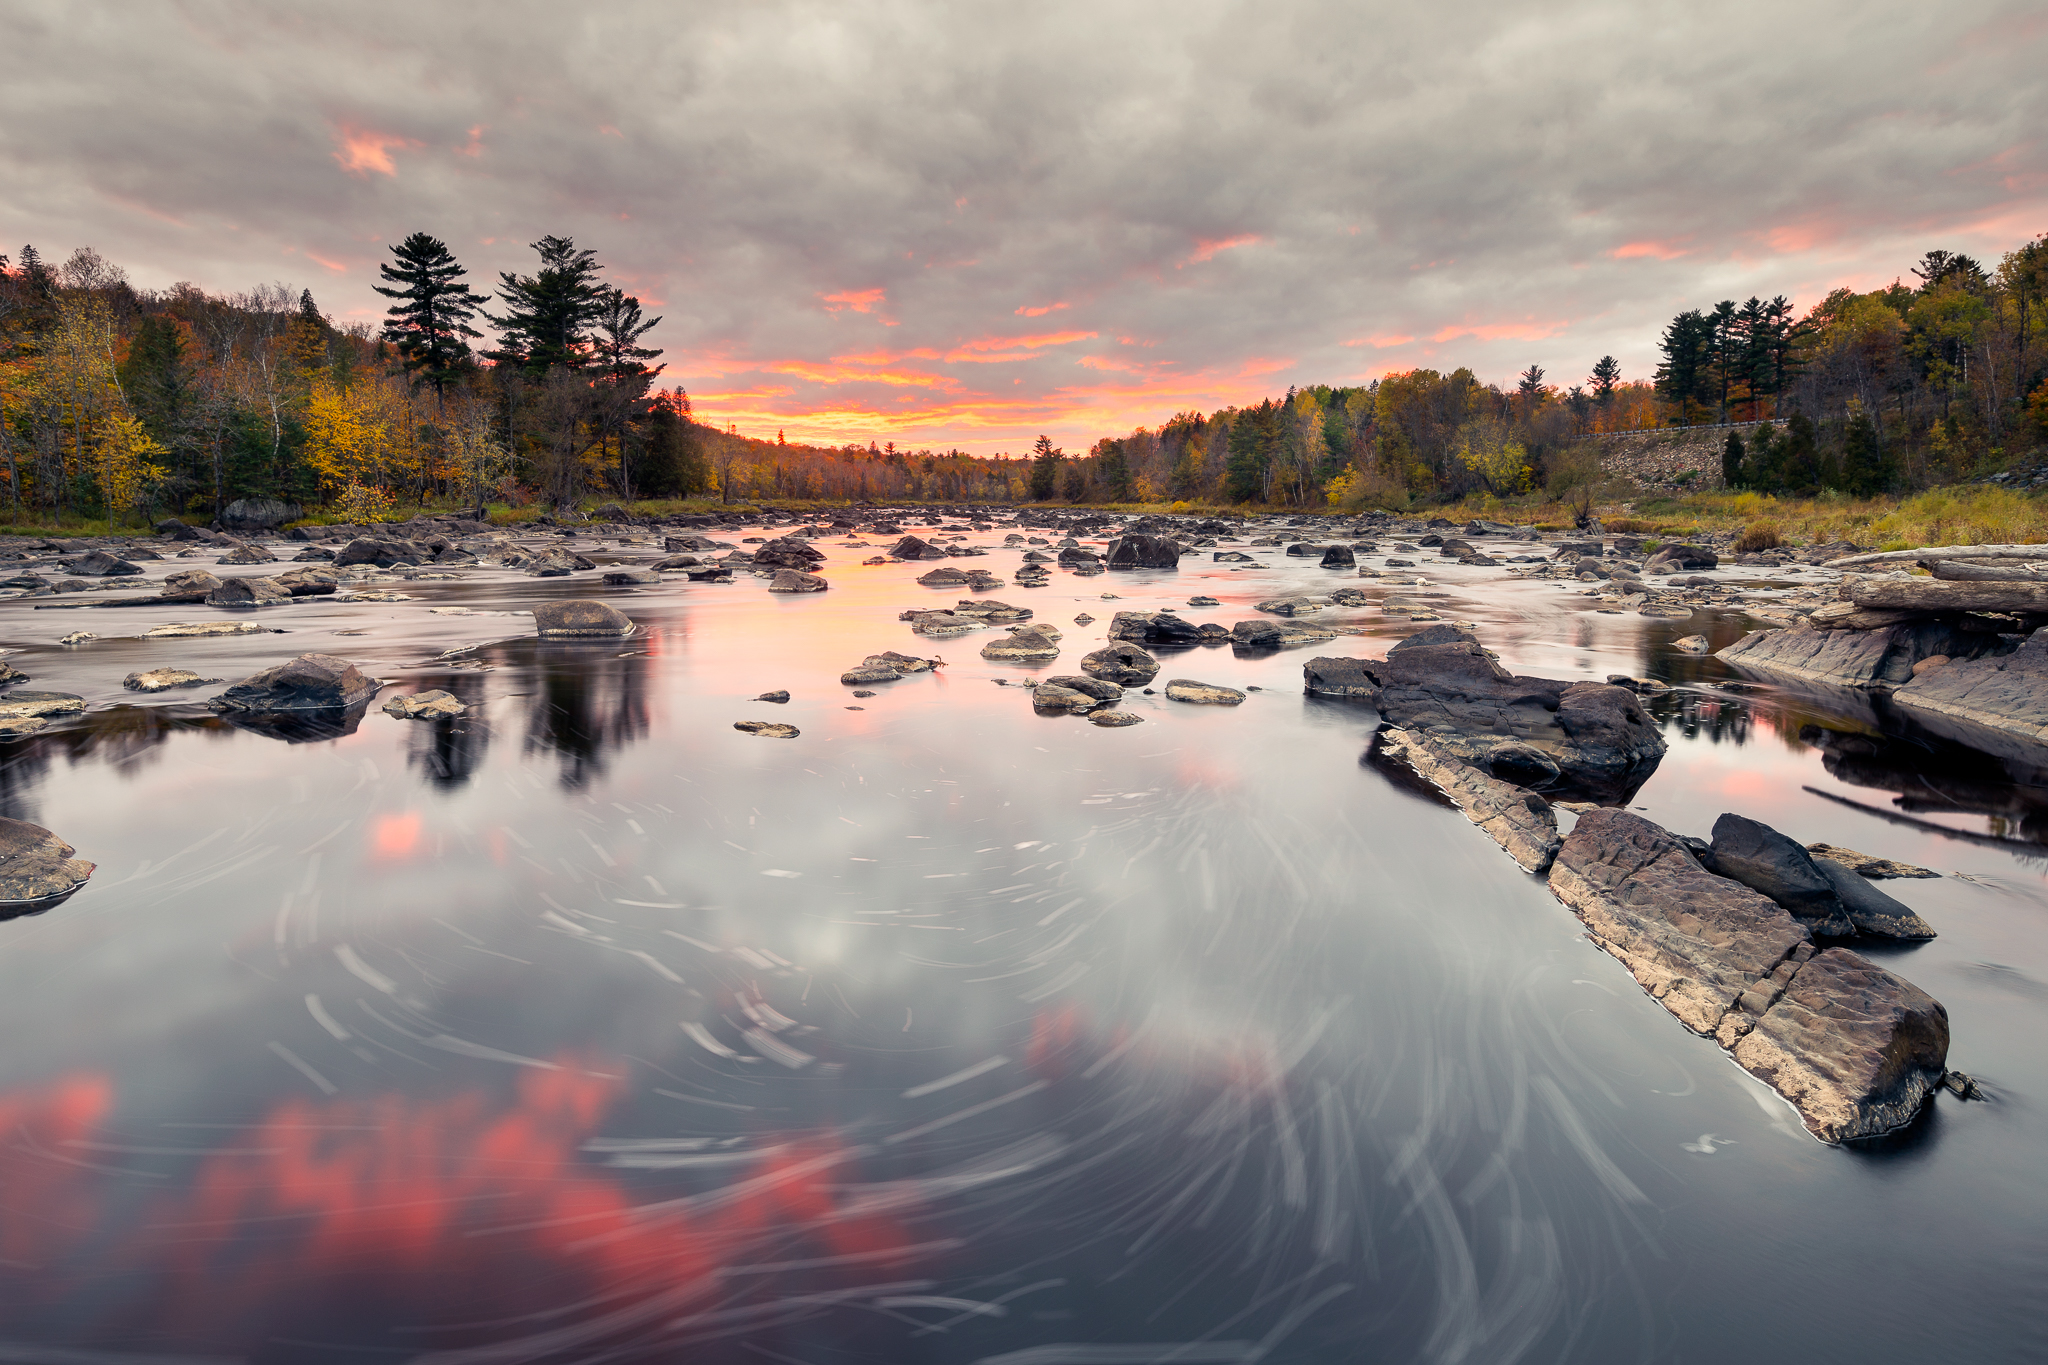 Saint Louis River Sunset / Ernesto Ruiz / I captured this image after running back down to the spot we had left maybe 15 minutes earlier